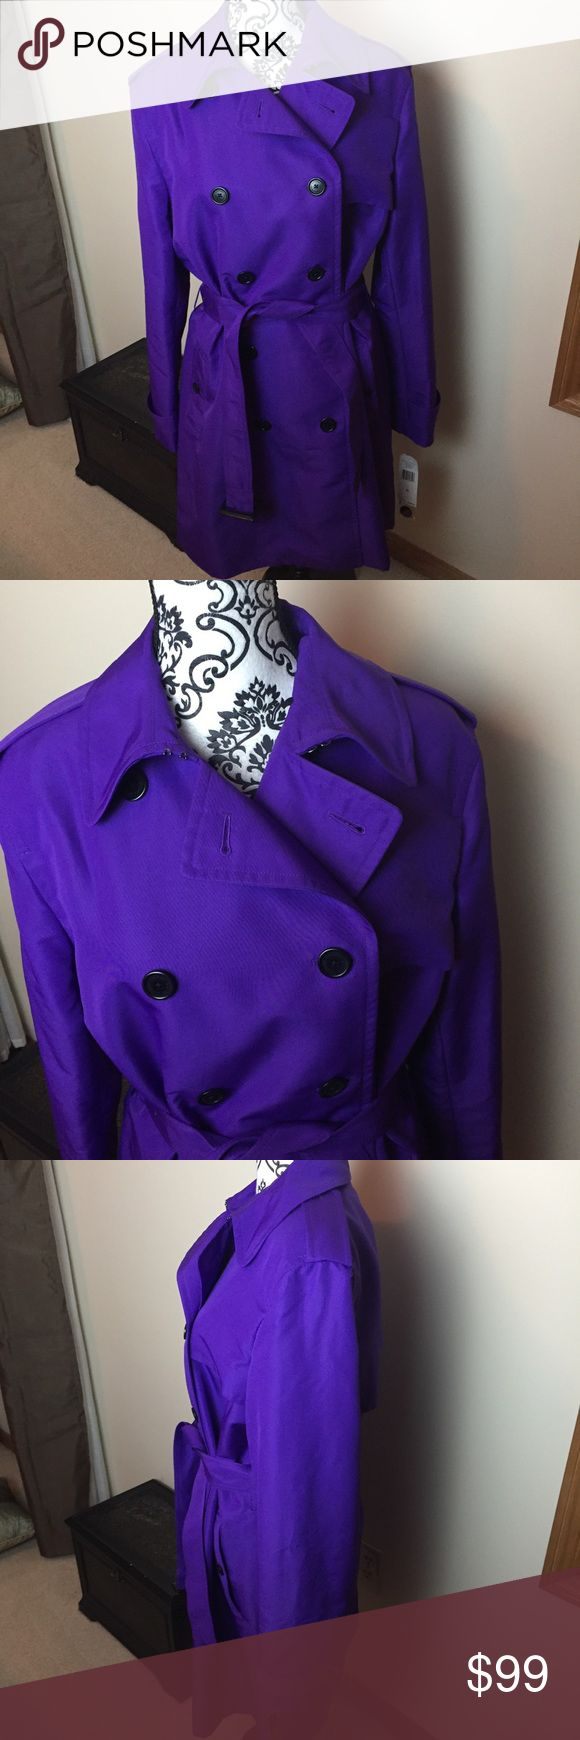 """NWT Ralph Lauren Vibrant Purple Trench Coat Excellent condition, new with tags!! Stunning bright purple trench, that is bound to get you attention!! Black buttons, adjustable tie, fully lined. Pit to pit measures 24"""" wide, waist measures 22"""" wide and the total length from top to bottom is 38"""" long. Ralph Lauren Jackets & Coats Trench Coats"""